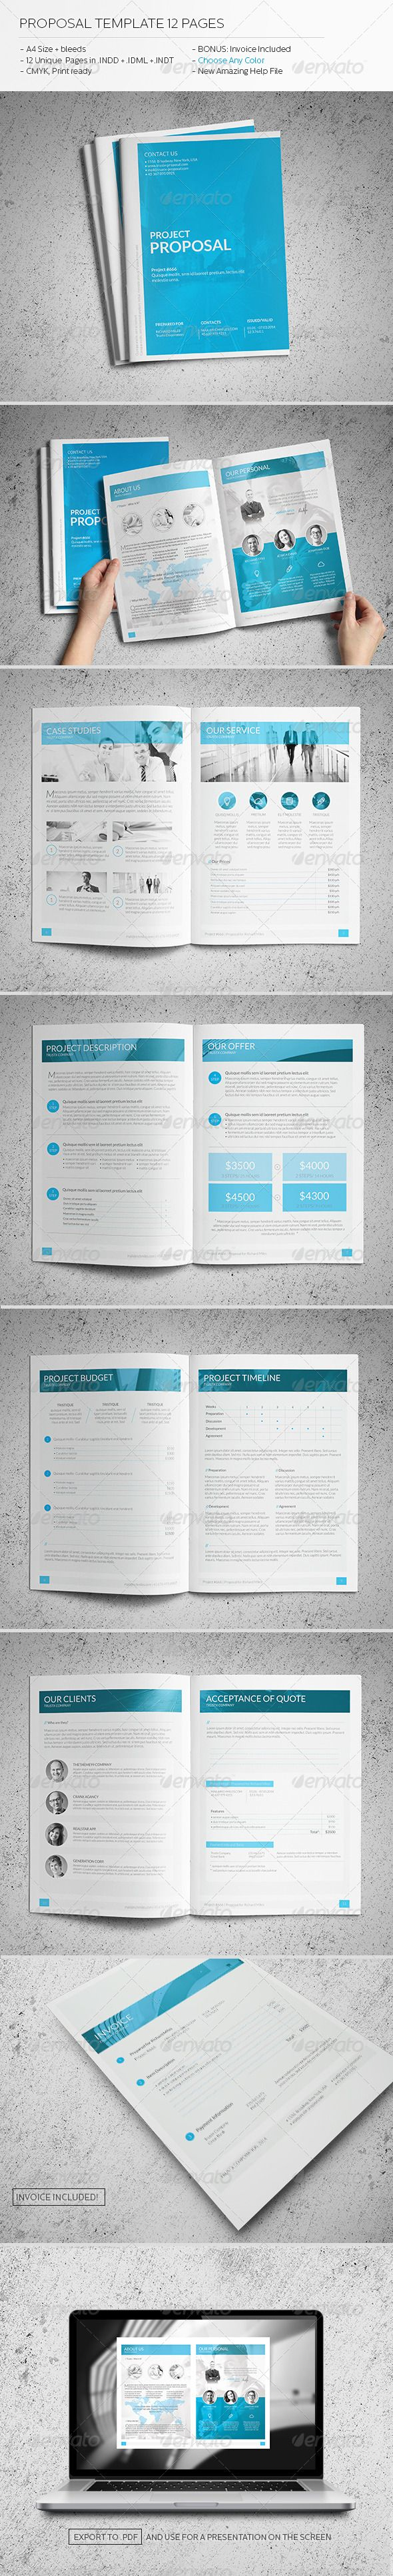 Commercial Proposal Format Brilliant Commercial Proposal Template #12  Branding  Pinterest  Proposal .